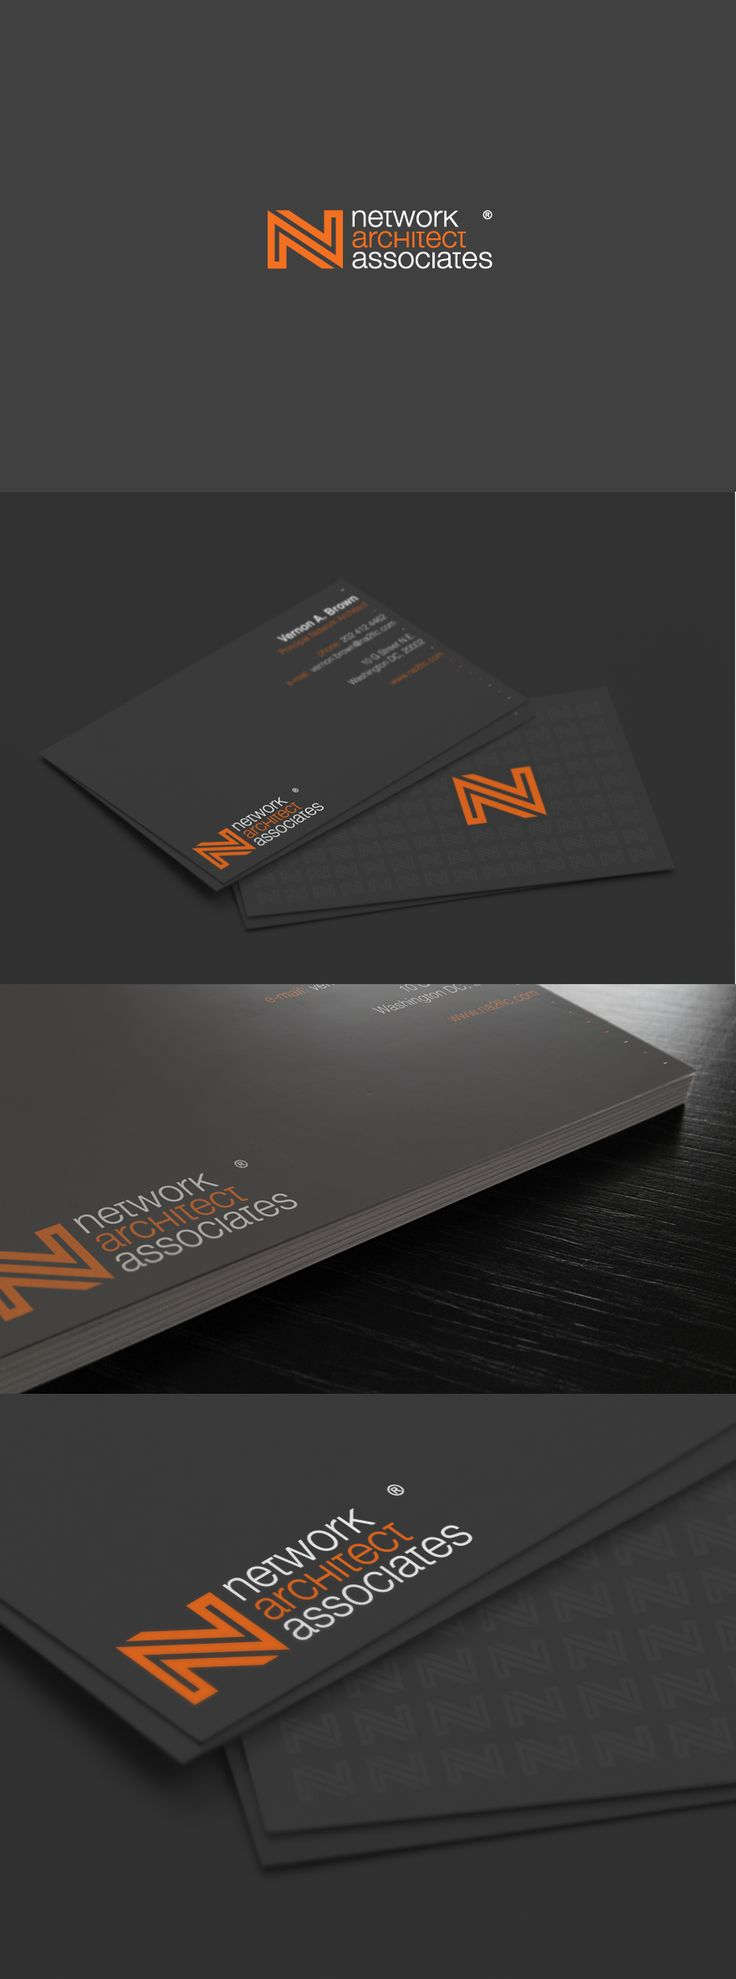 Network Architect Associates || Weekly business card design for everyone! Introducing Moire Studios a thriving website and graphic design studio. Feel Free to Follow us @moirestudiosjkt to see more outstanding pins like this. Or visit our website www.moirestudiosjkt.com to know more about us. #businessCardDesign #graphicDesign ||